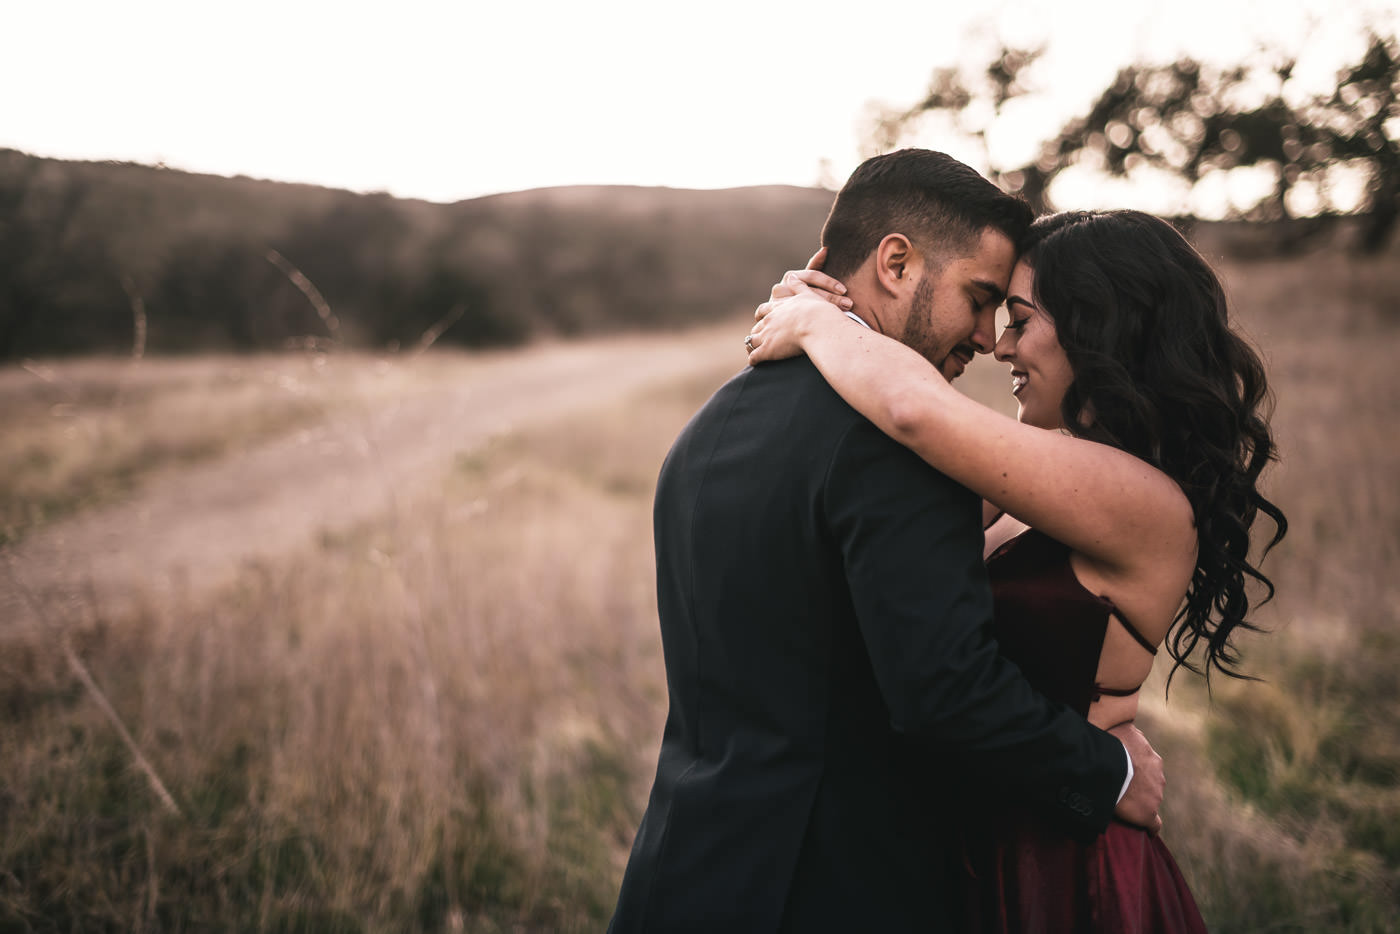 Three great reasons to consider eloping -